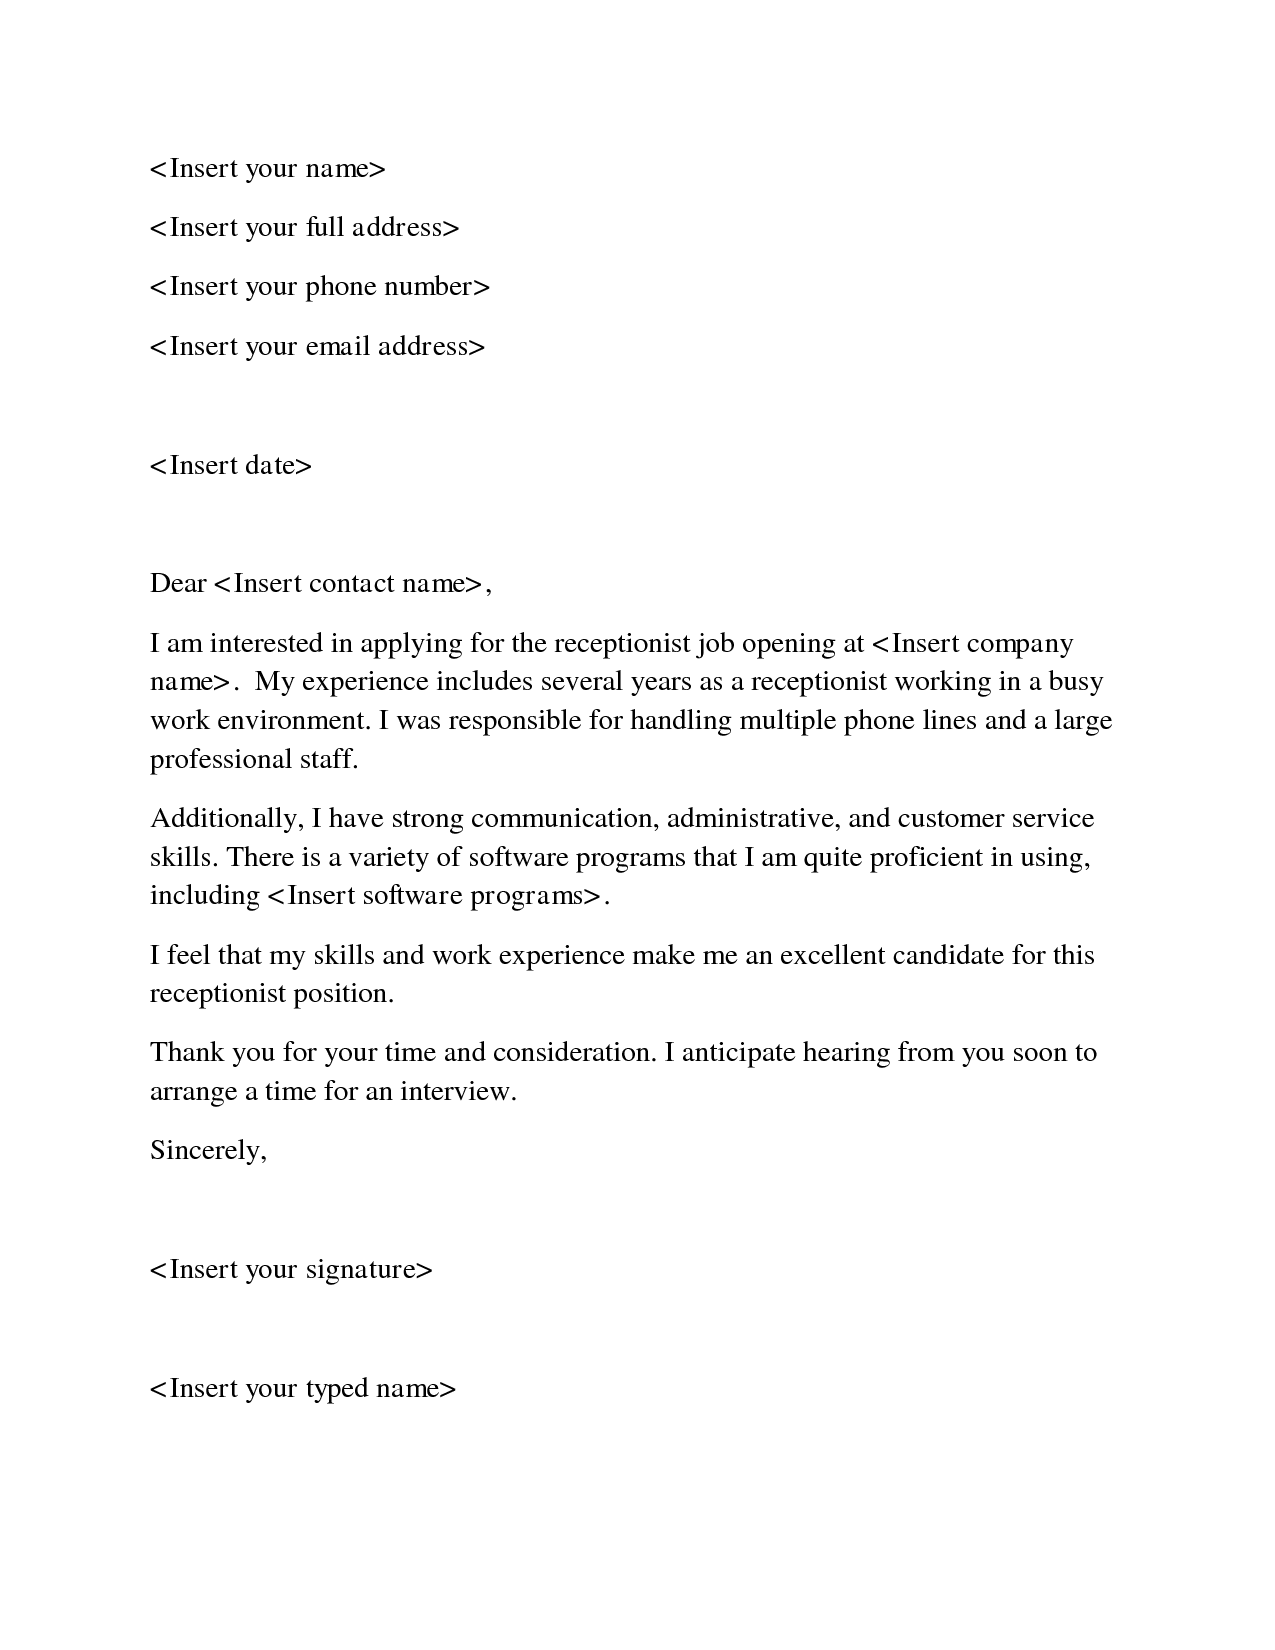 cover letter help receptionist resume top essay writingcover letter samples for jobs application letter sample - Medical Receptionist Cover Letter